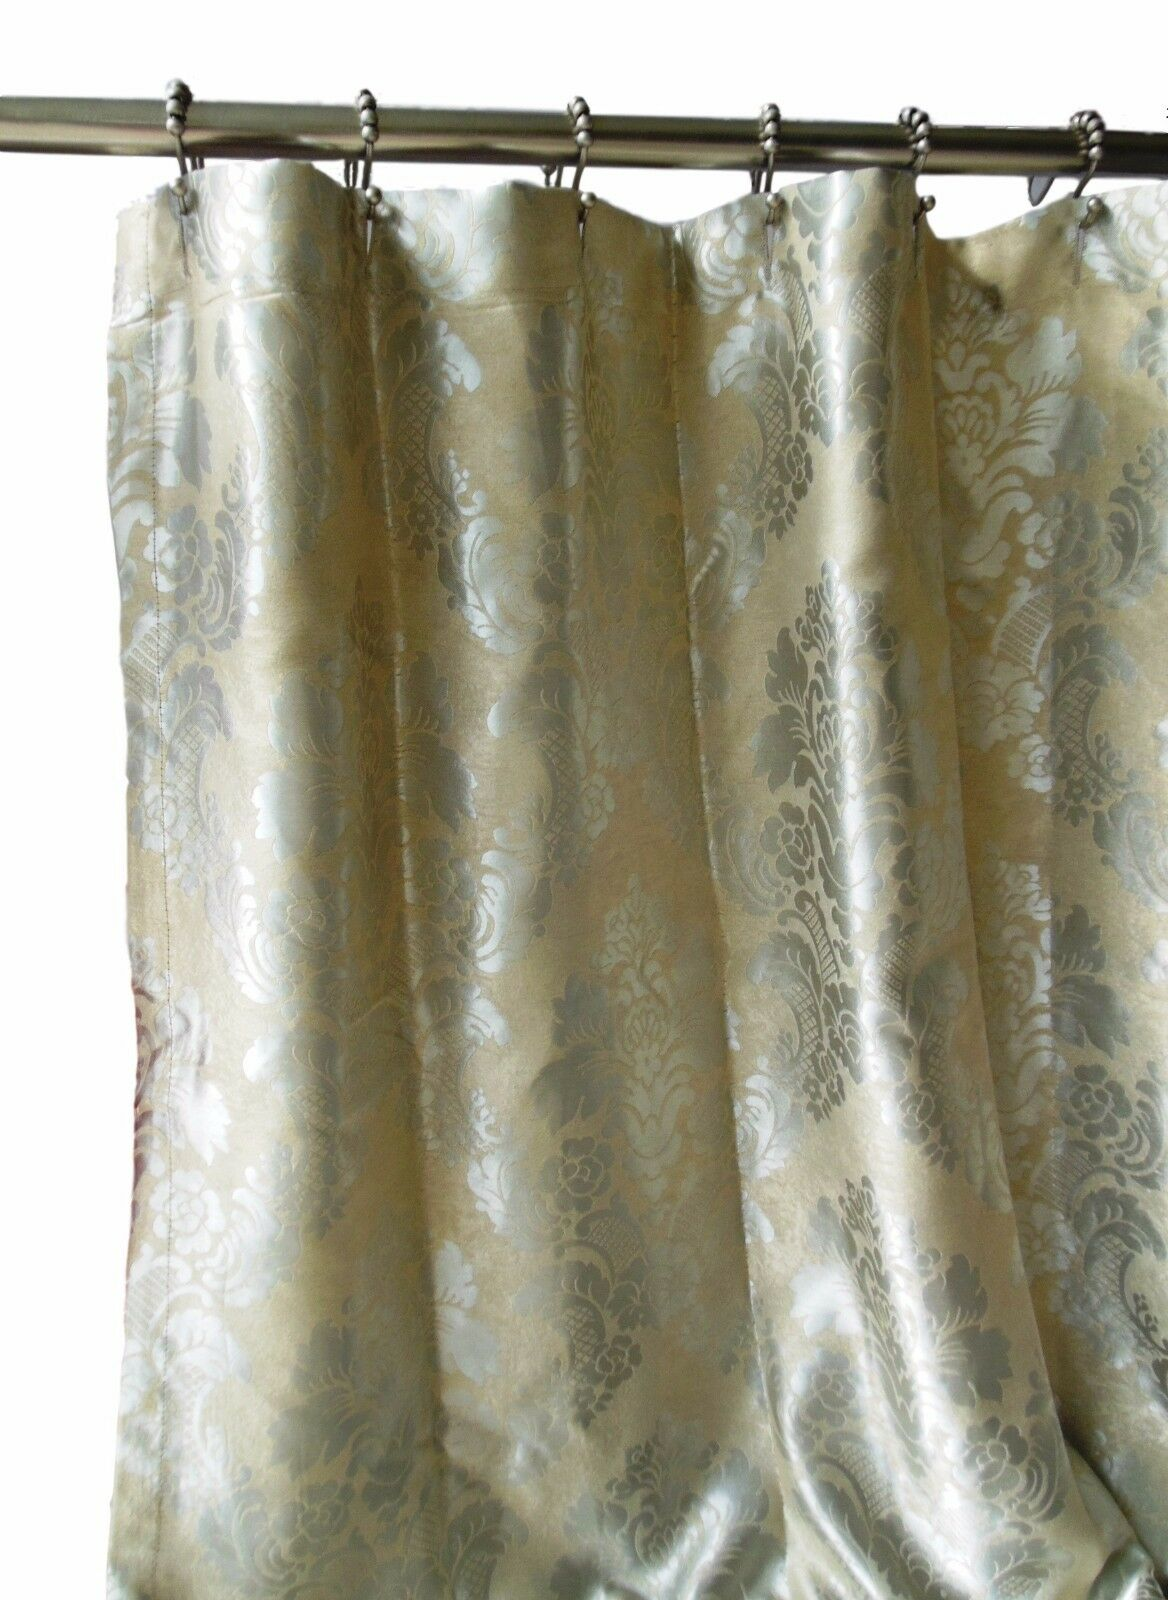 Luxury Shabby Chic Fabric Shower Curtain Damask Jacquard High Quality Silver Tan